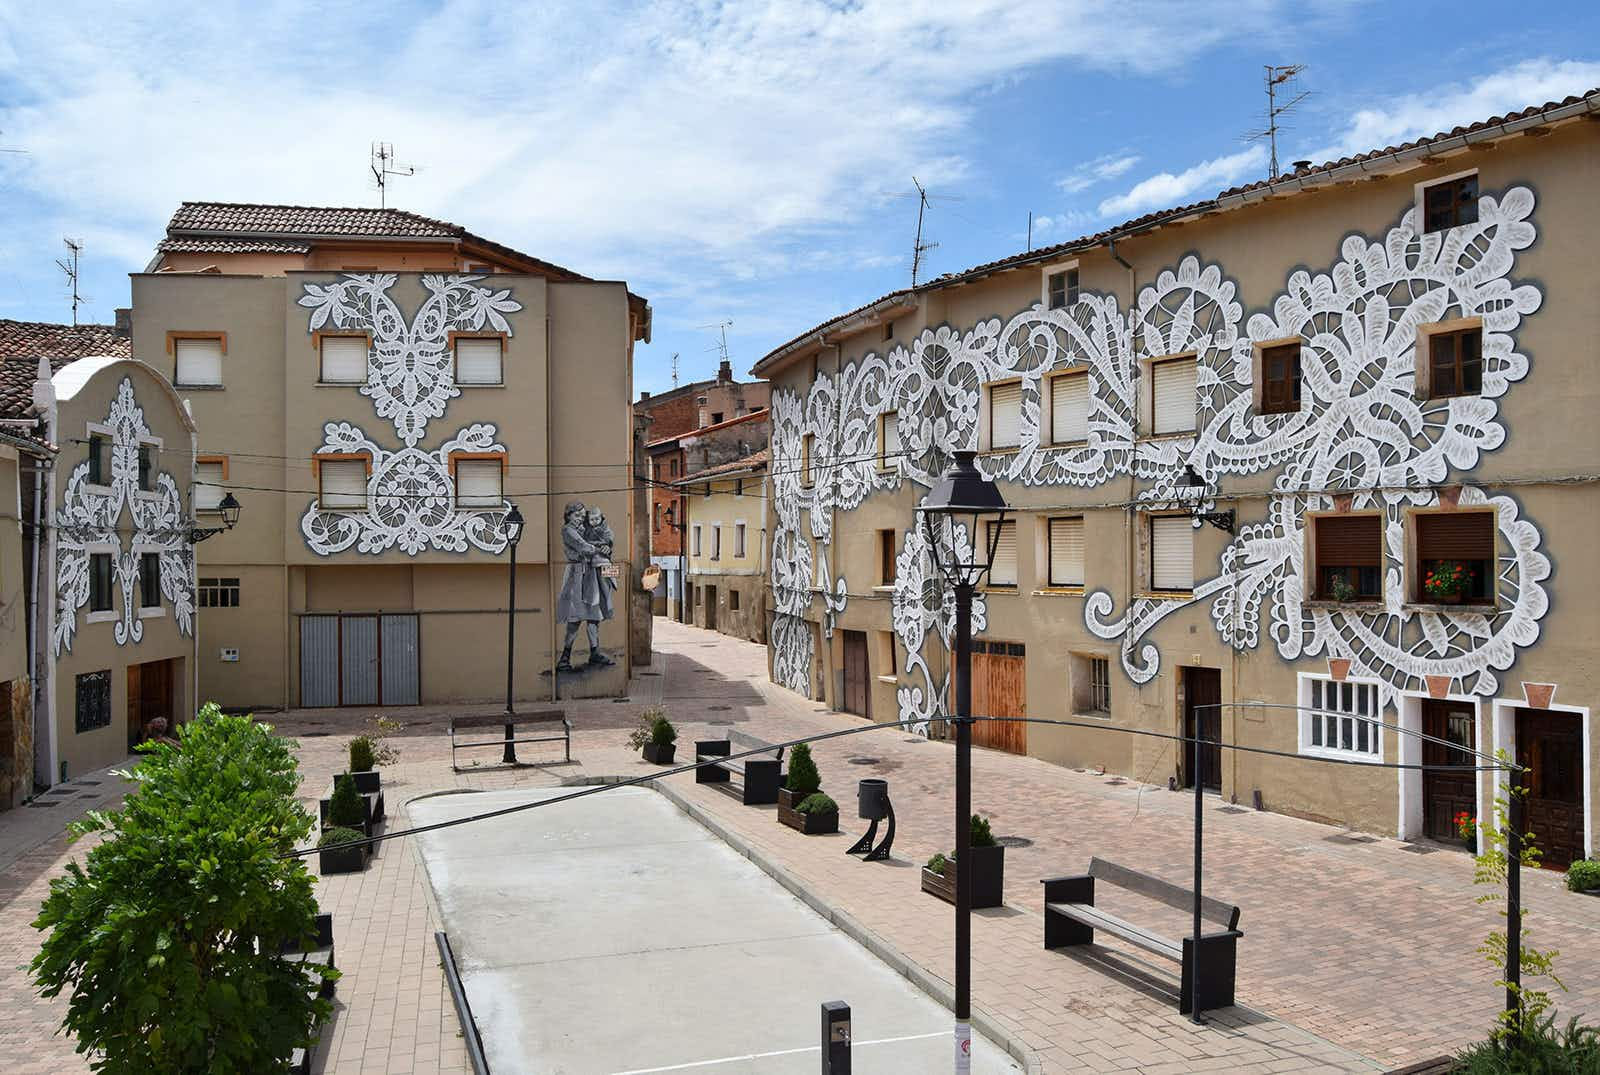 Street artists cover Spanish village in murals celebrating local women